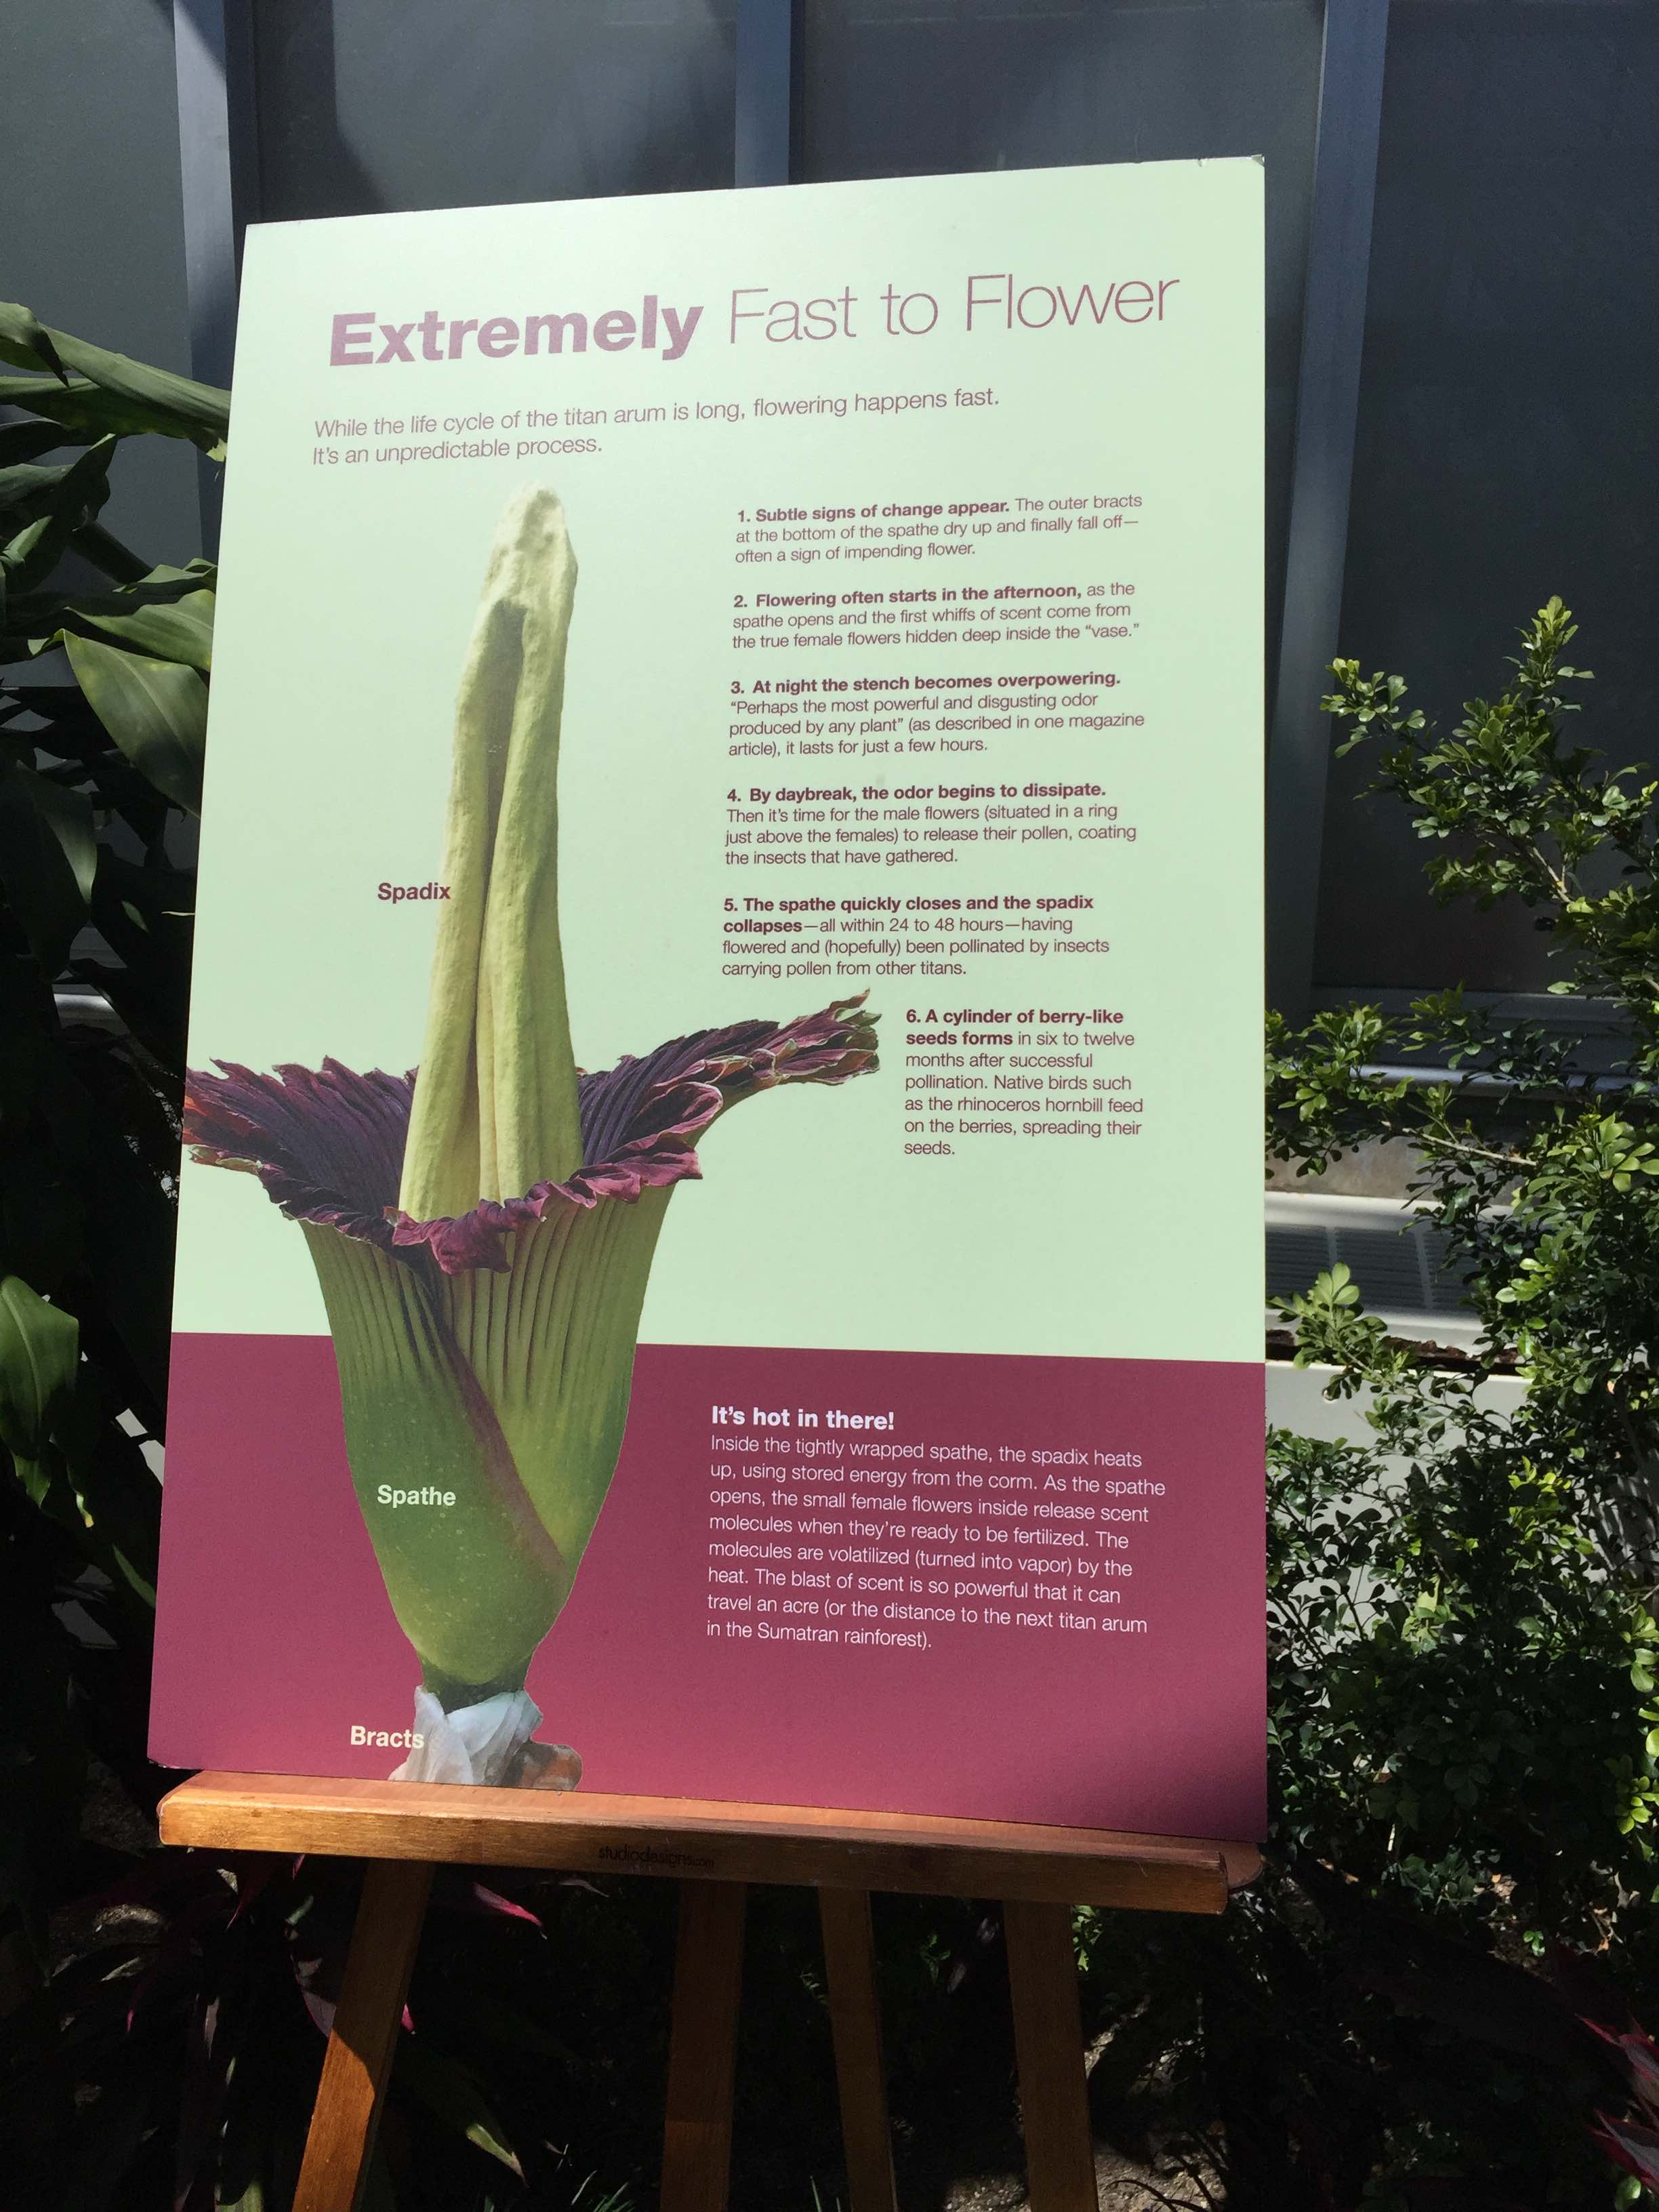 Information about the Corpse Flower blooming.